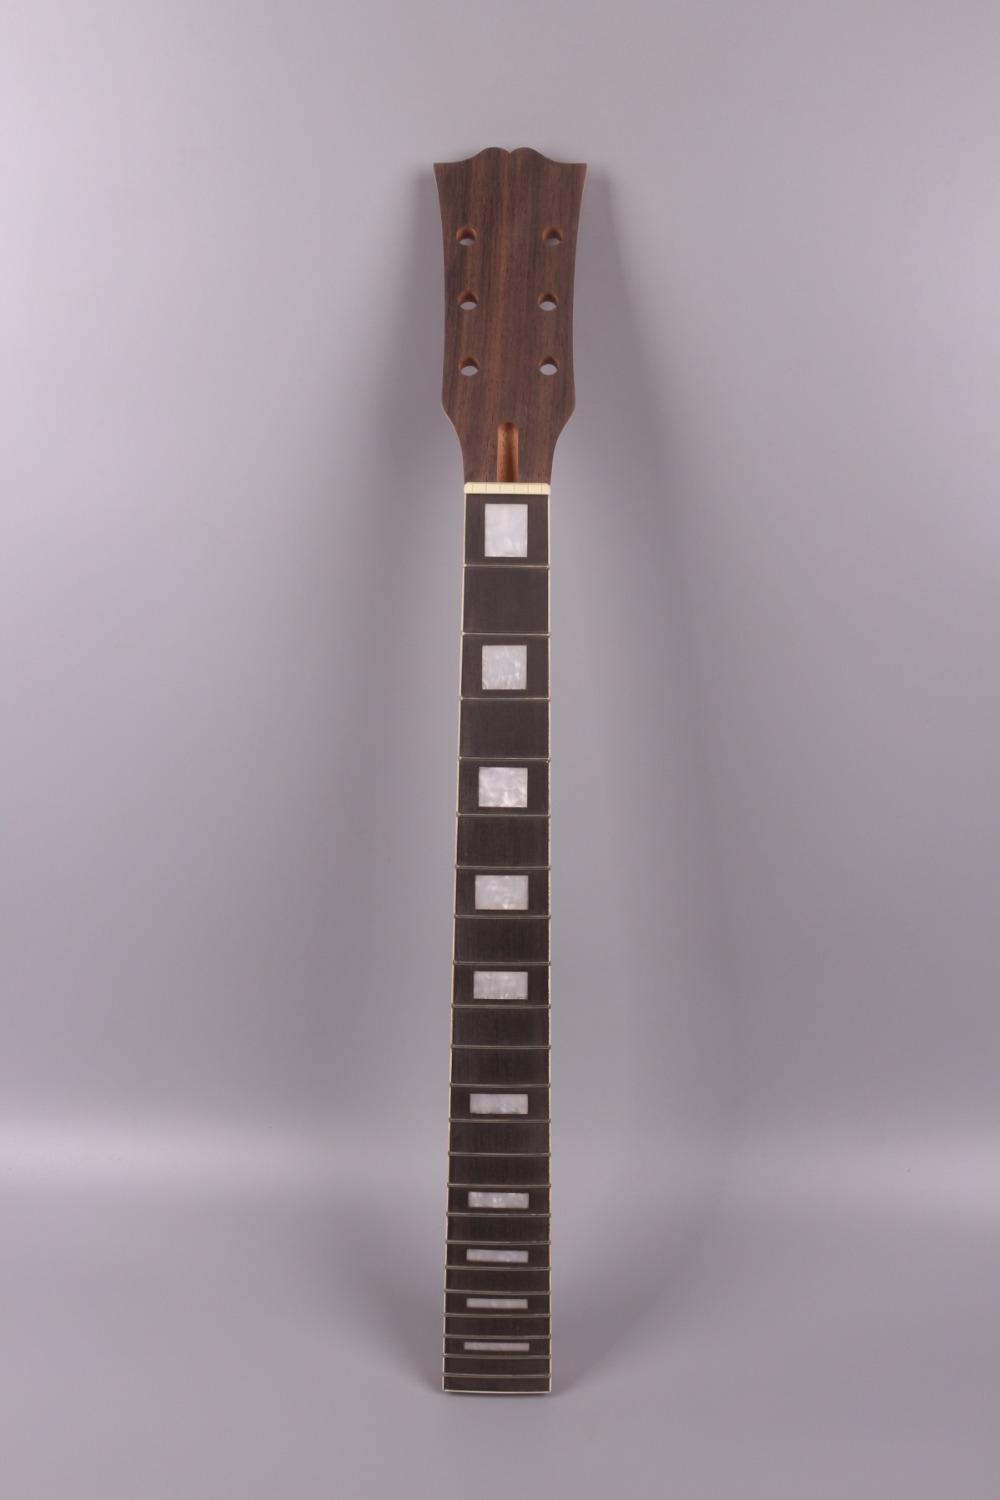 electric guitar neck 22 fret  mahogany made and rosewood fingerboard 004# black color 24 frets holt on one electric guitar neck mahogany wood and rosewood fingerboard 171